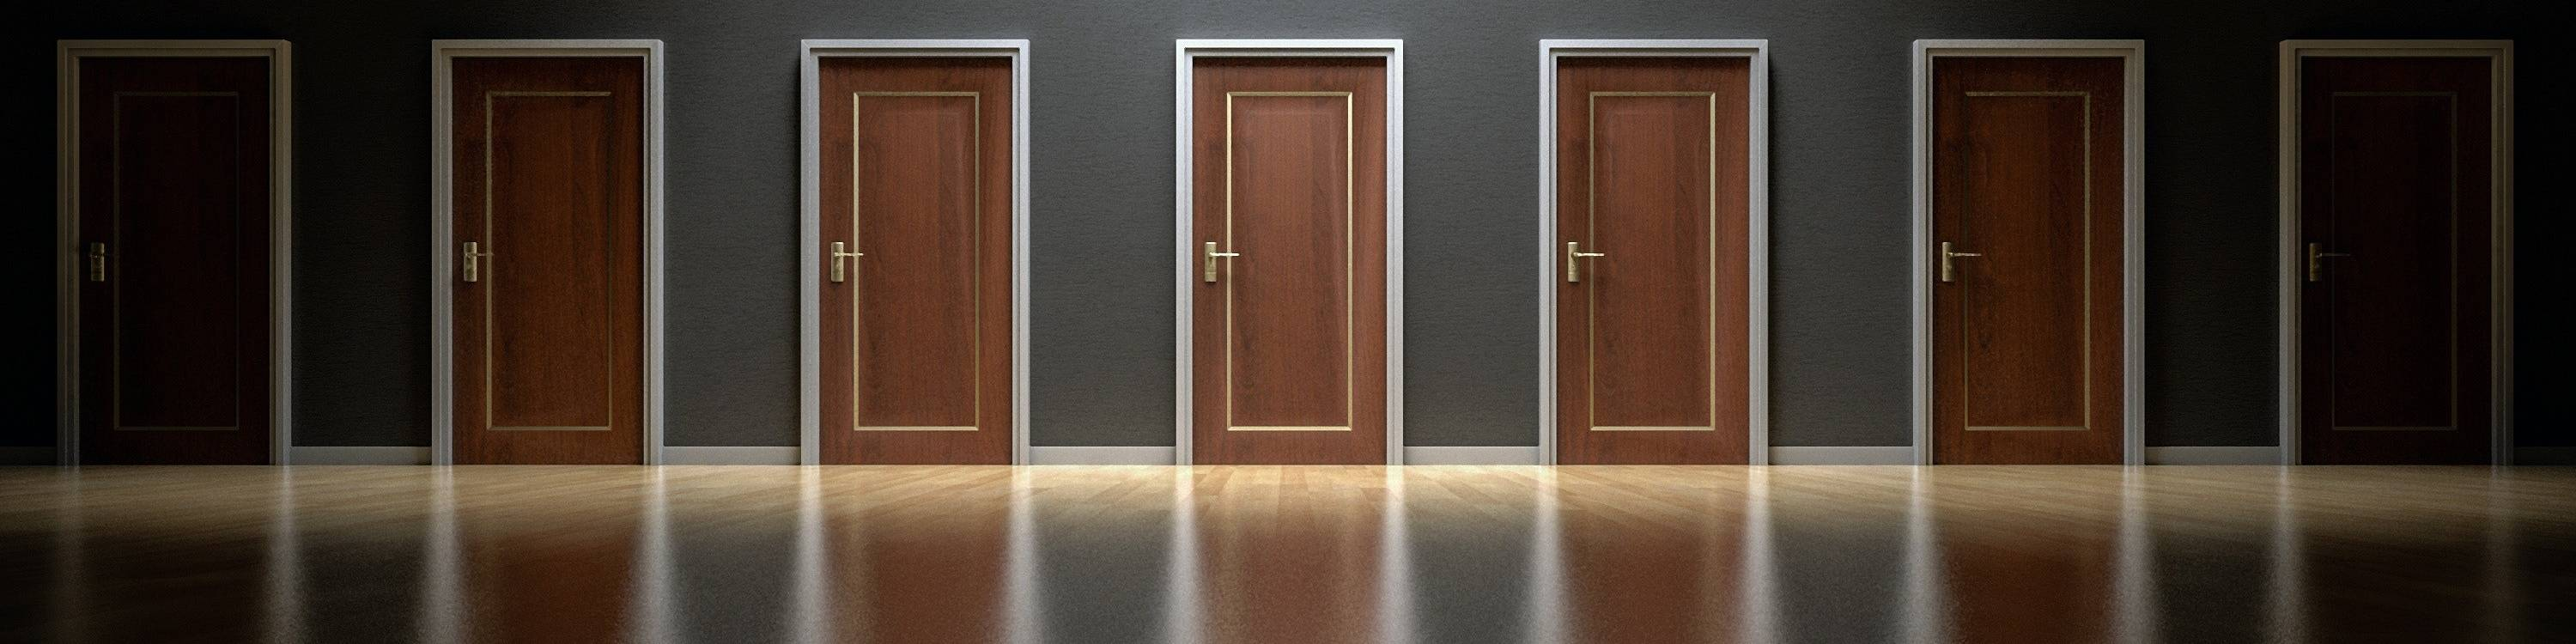 A room full of doors, the decision is yours!